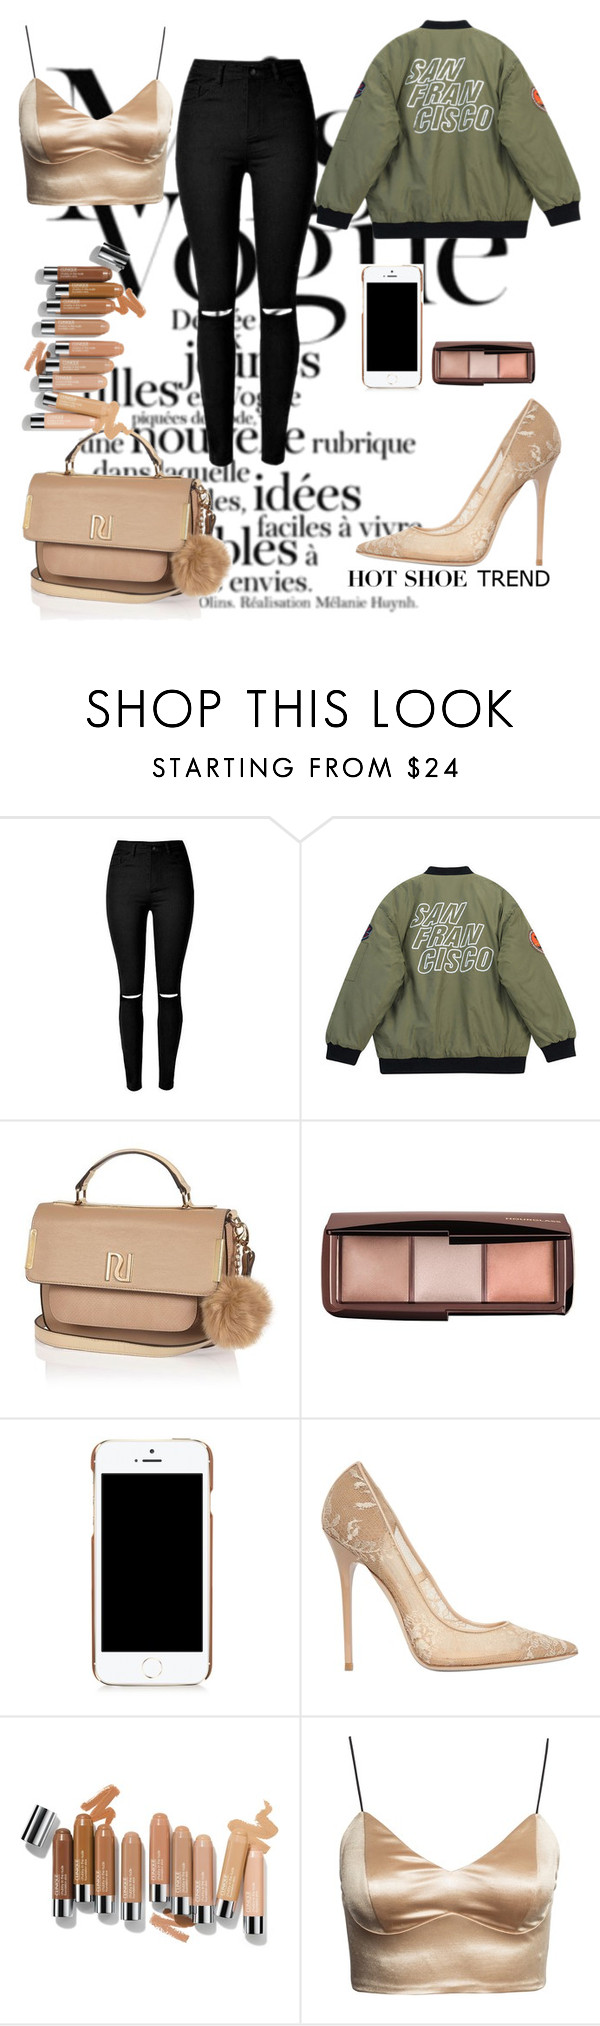 """S"" by ziamftlarry ❤ liked on Polyvore featuring Chicnova Fashion, River Island, Hourglass Cosmetics, Moschino, Jimmy Choo, women's clothing, women, female, woman and misses"